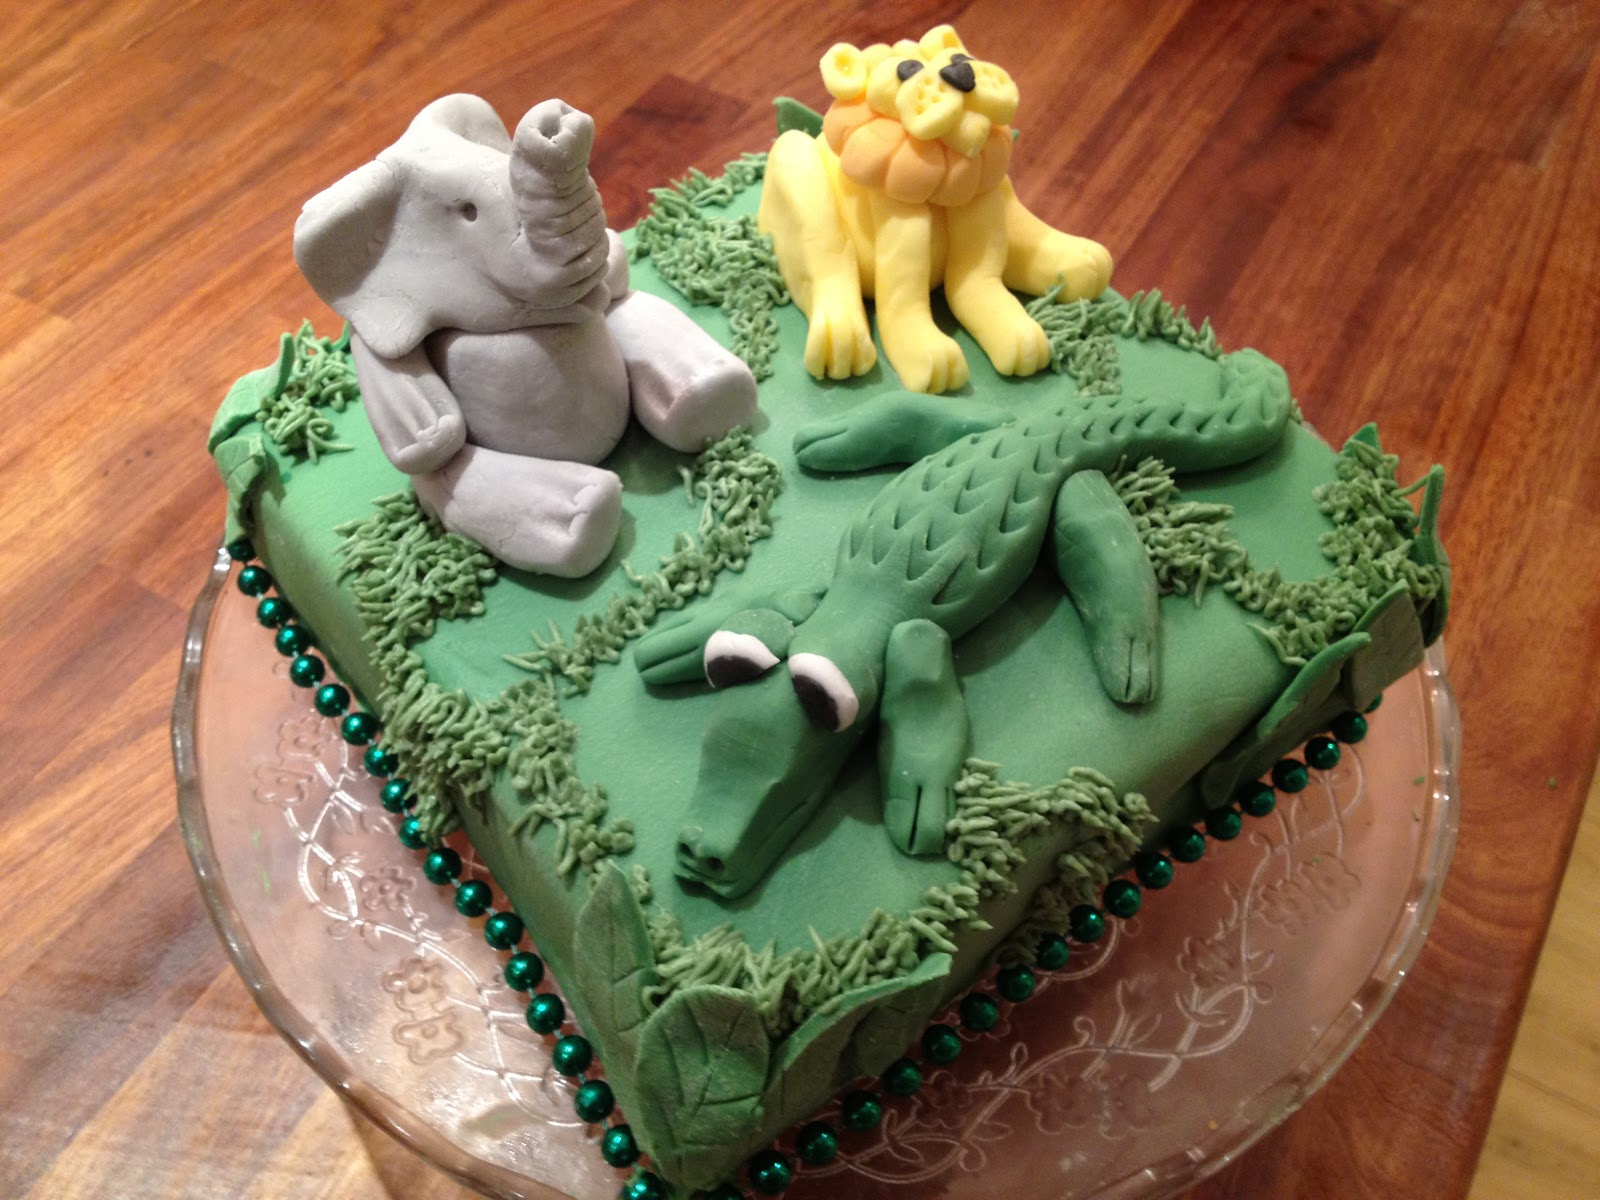 Birthday Cake Icing Recipes Easy: Gemma's Toddler Kitchen: Icing Sugar Crocodile For